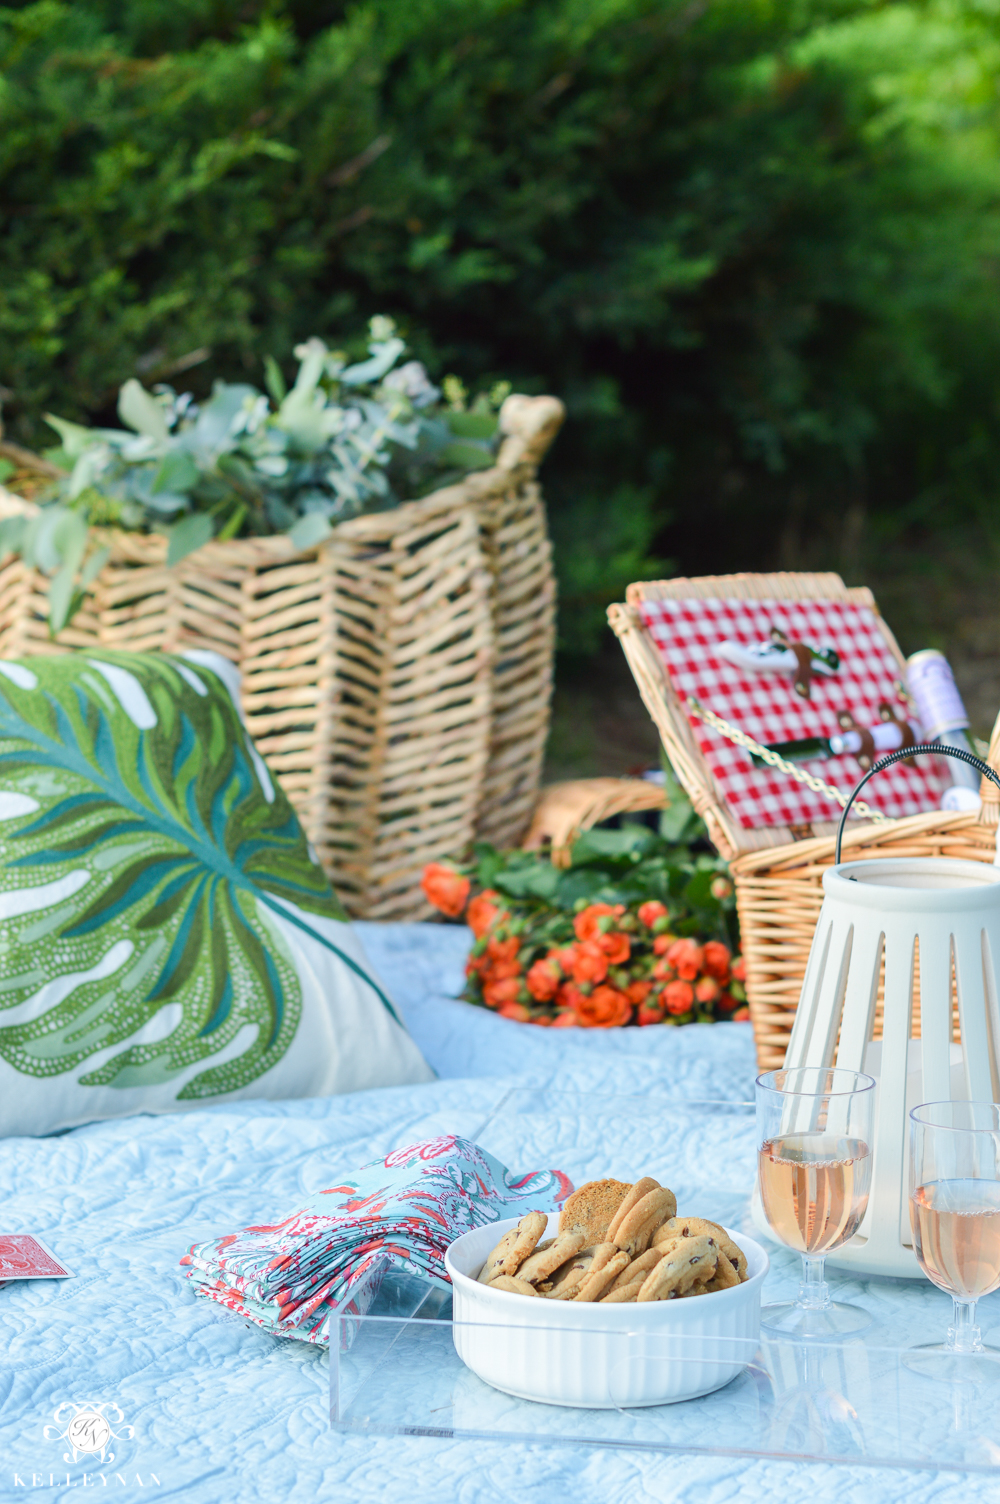 Picnic and Tailgate Ideas and Setup- trays with finger food